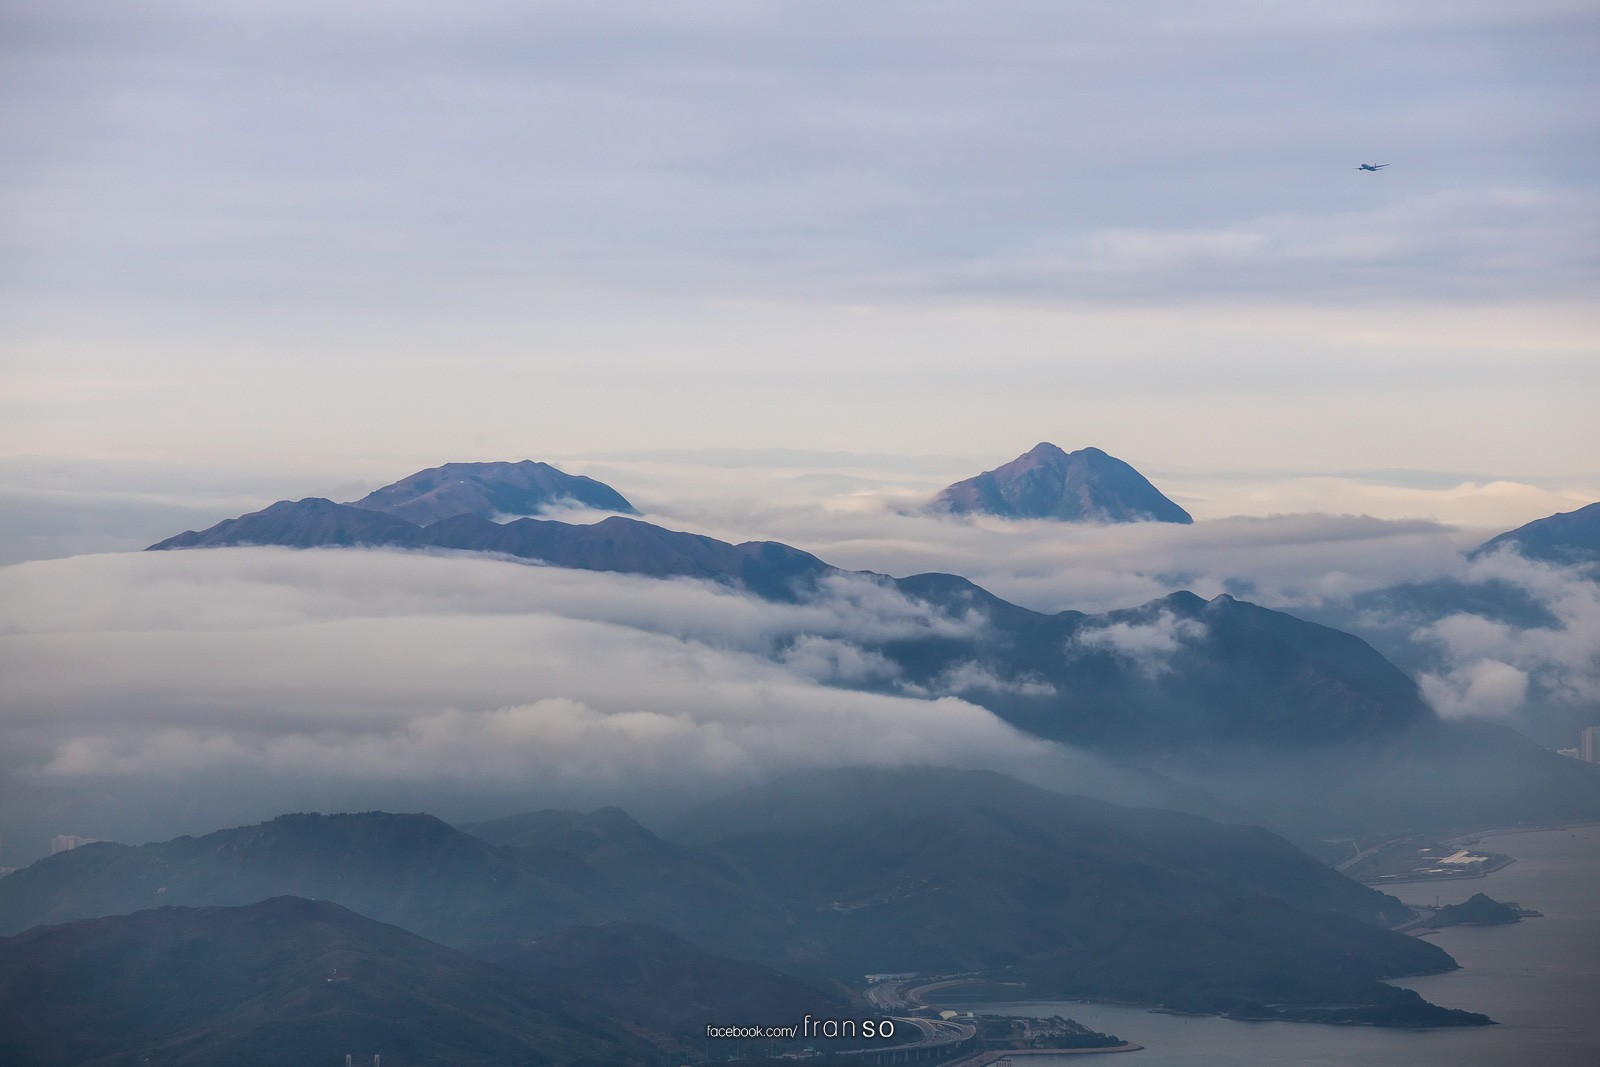 Landscape | Hong Kong | Over the cloud  | Cloud of Sea